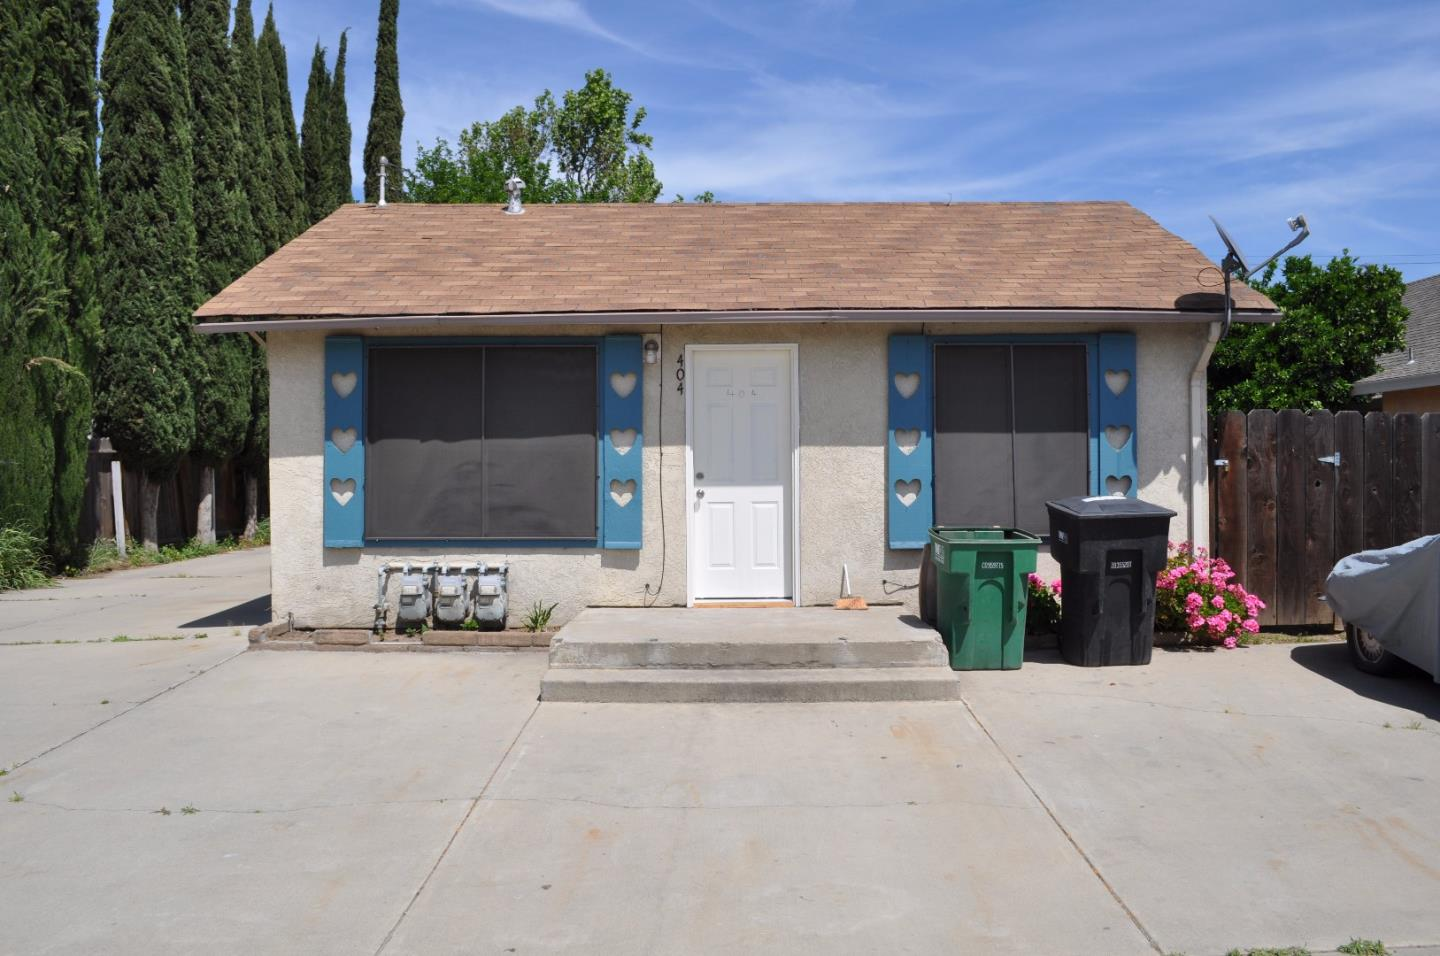 Multi-Family Home for Sale at 404 F Street Waterford, California 95386 United States